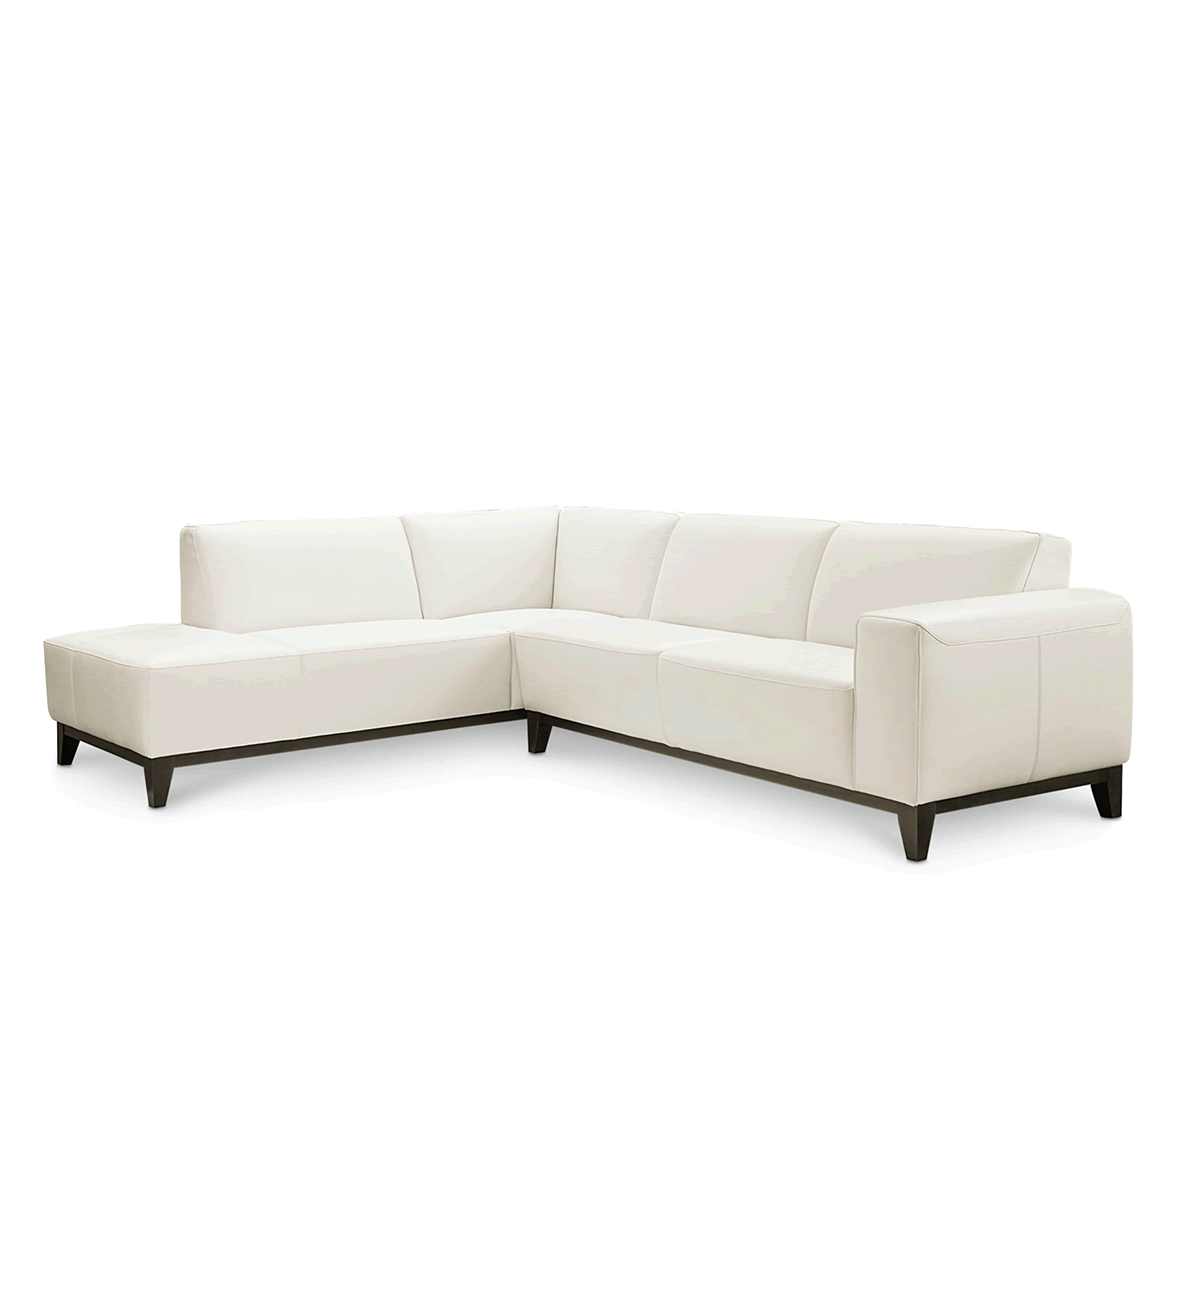 Couches and Sofas - Macy\'s